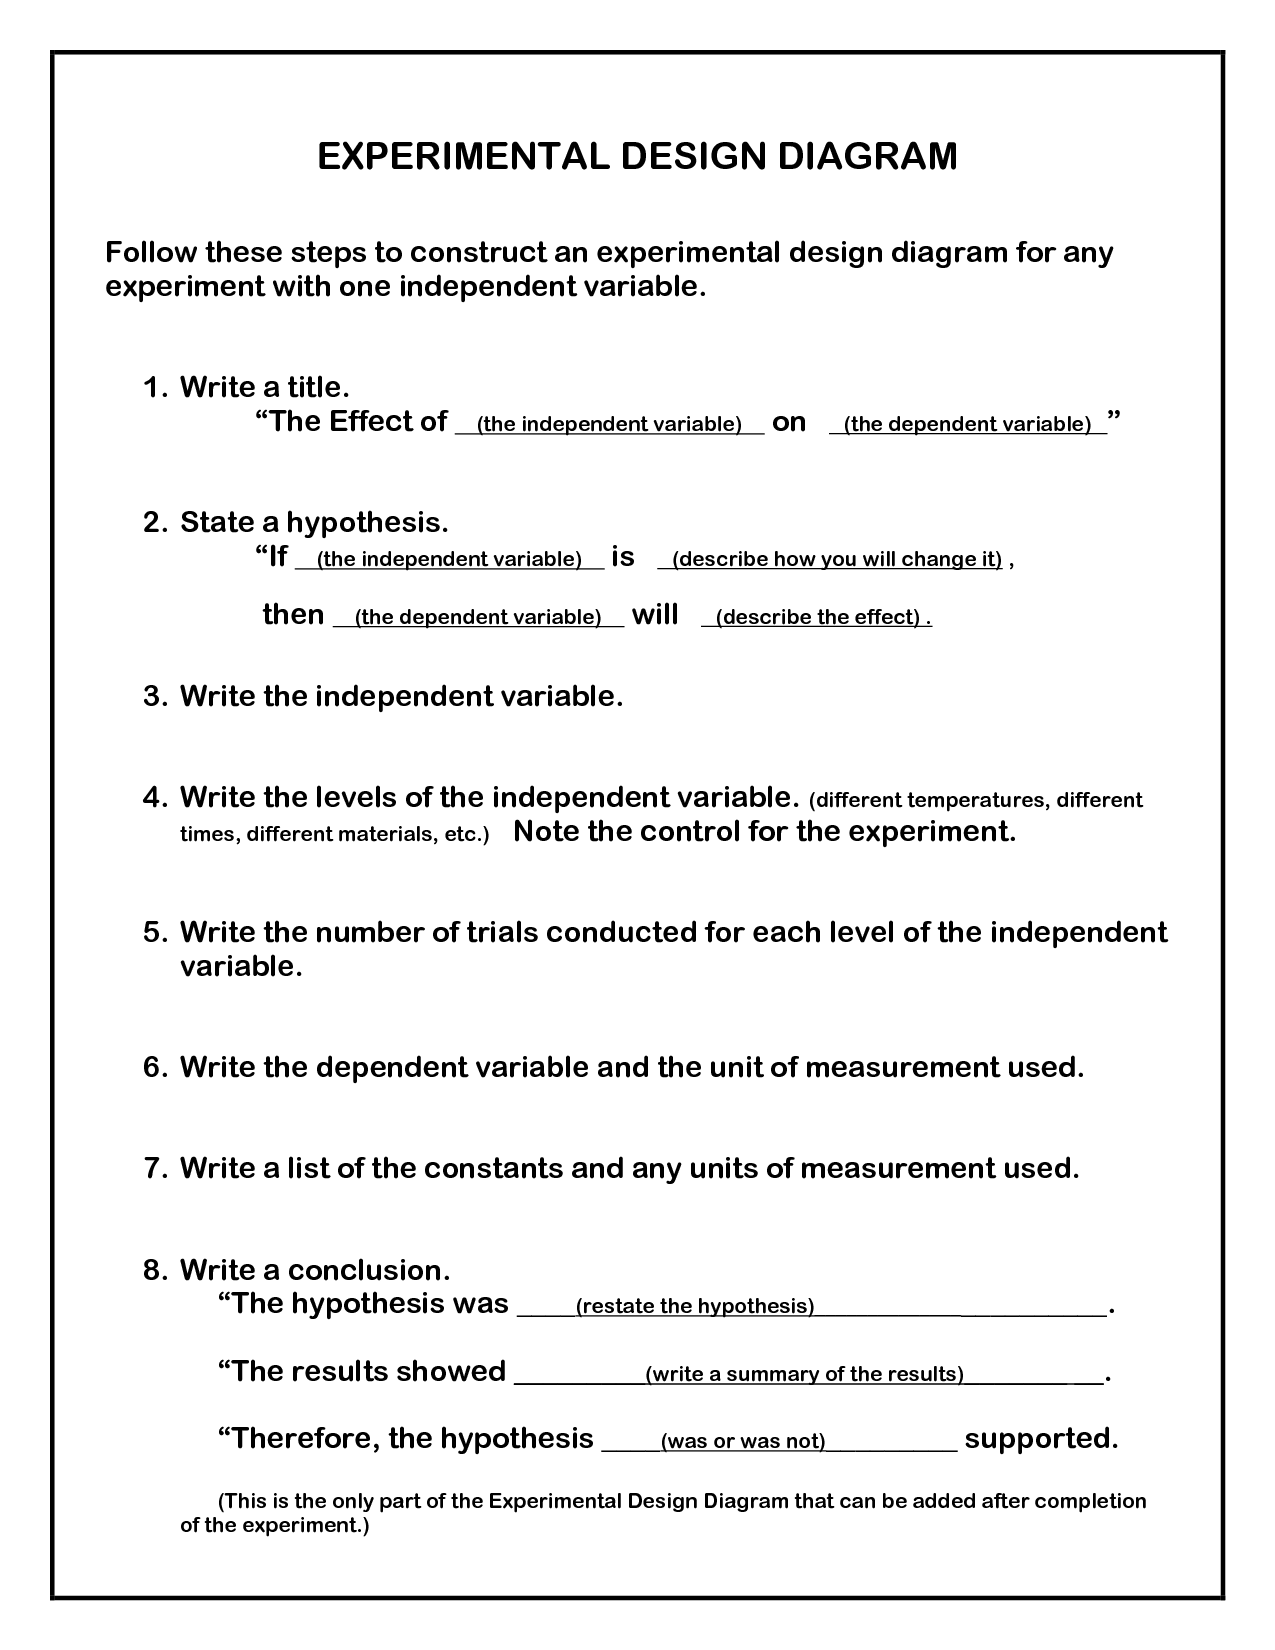 worksheet Bill Nye Evolution Worksheet experimental design worksheet ask com image search projects to how an experiment search